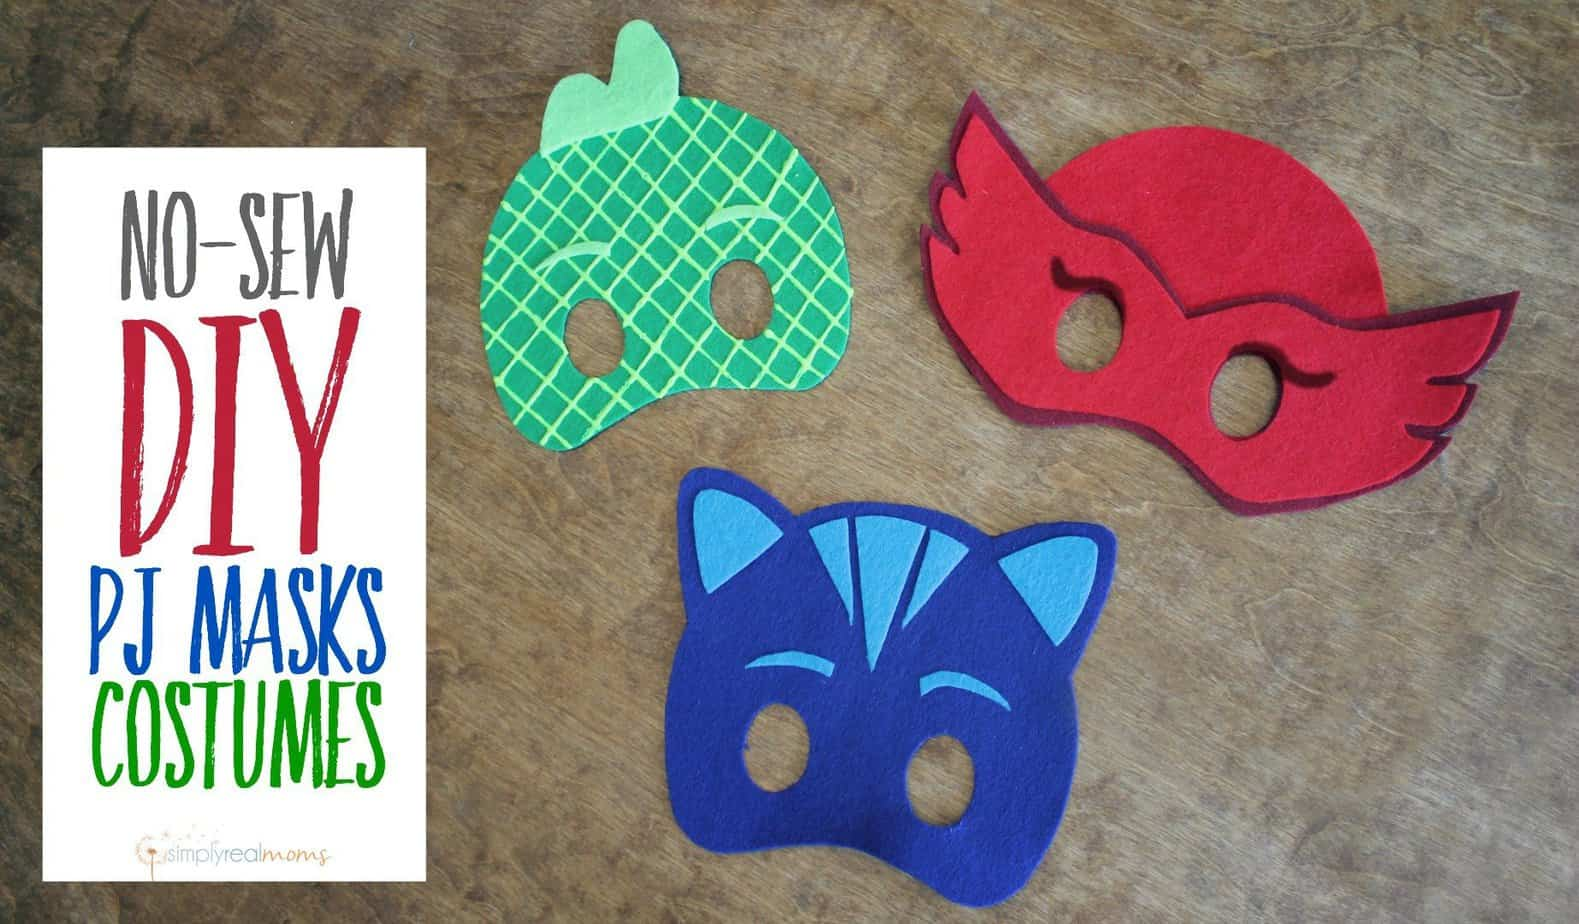 No Sew DIY PJ Masks Costumes 1